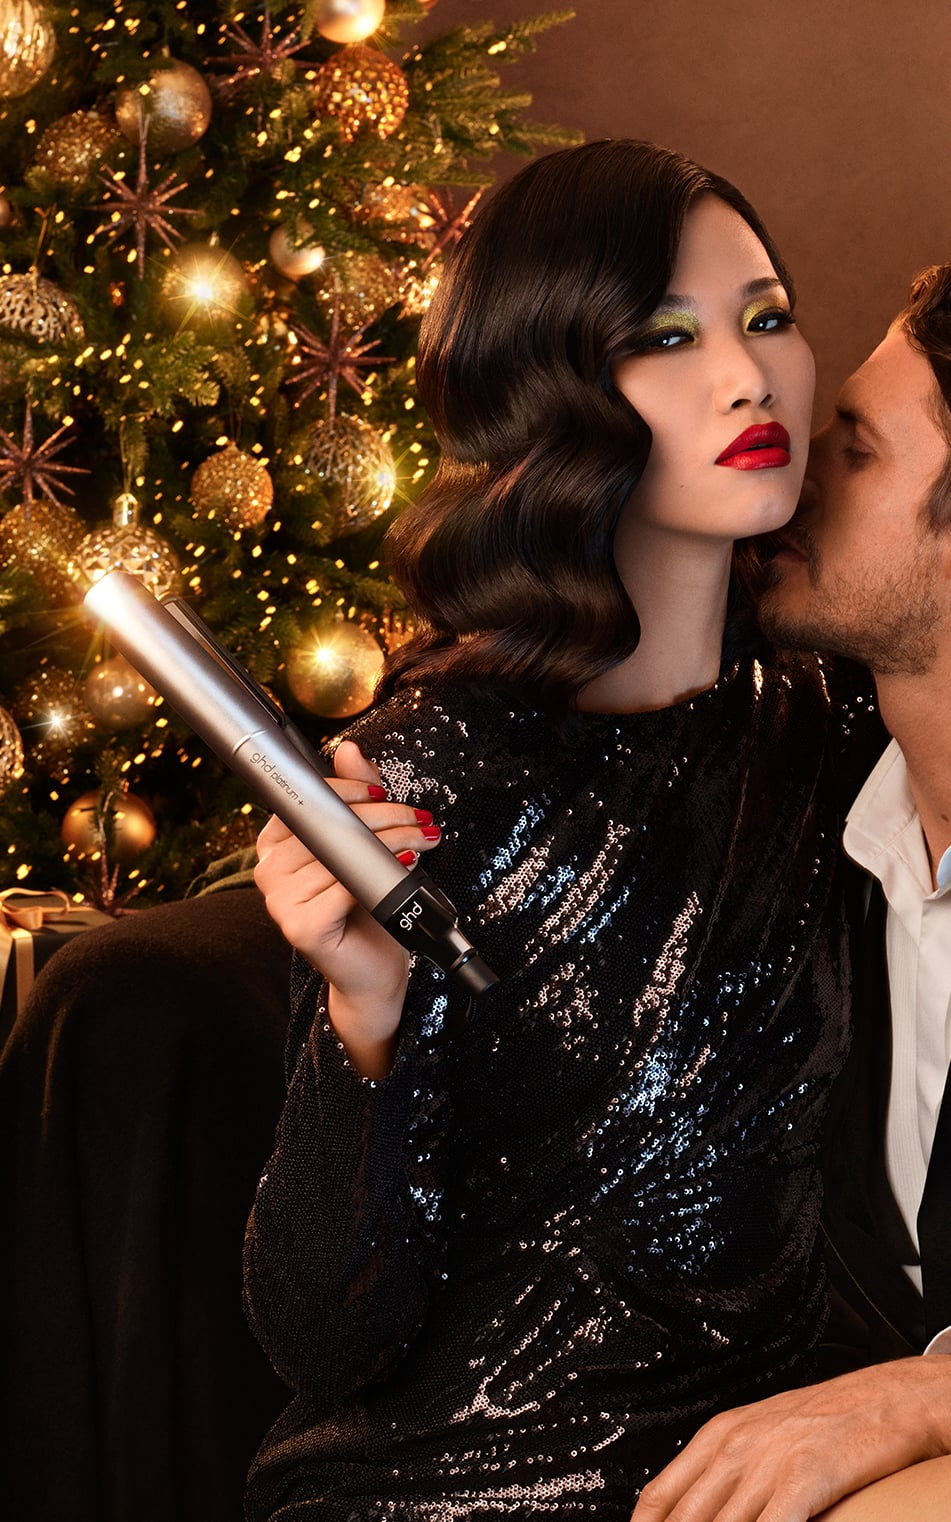 ghd deluxe gift set model